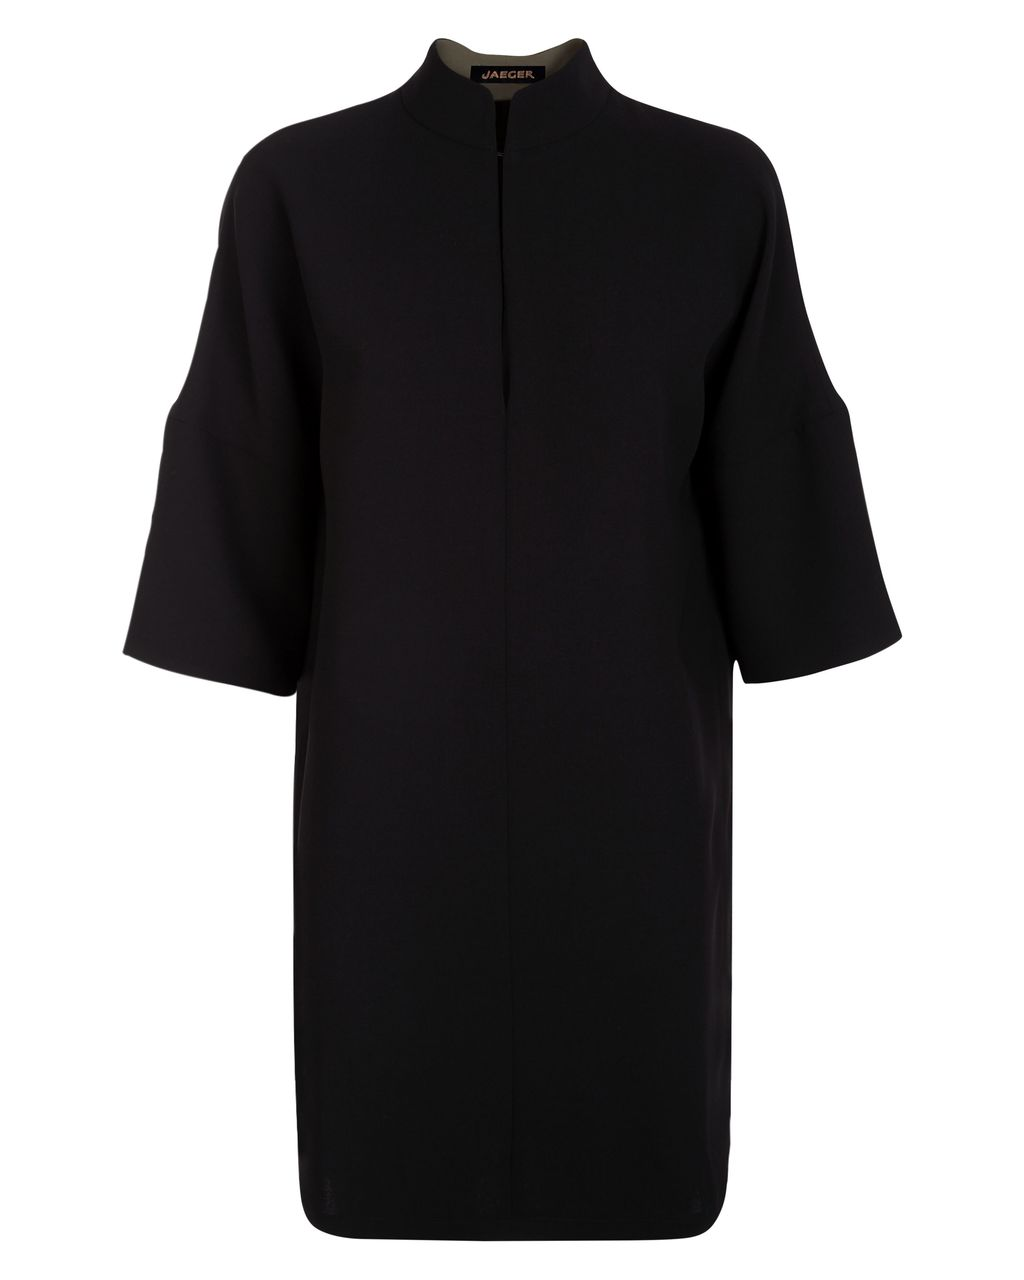 Crepe Dropped Shoulder Dress, Black - style: shift; pattern: plain; neckline: high neck; predominant colour: black; length: just above the knee; fit: straight cut; fibres: polyester/polyamide - 100%; sleeve length: 3/4 length; sleeve style: standard; pattern type: fabric; texture group: other - light to midweight; occasions: creative work; season: s/s 2016; wardrobe: investment